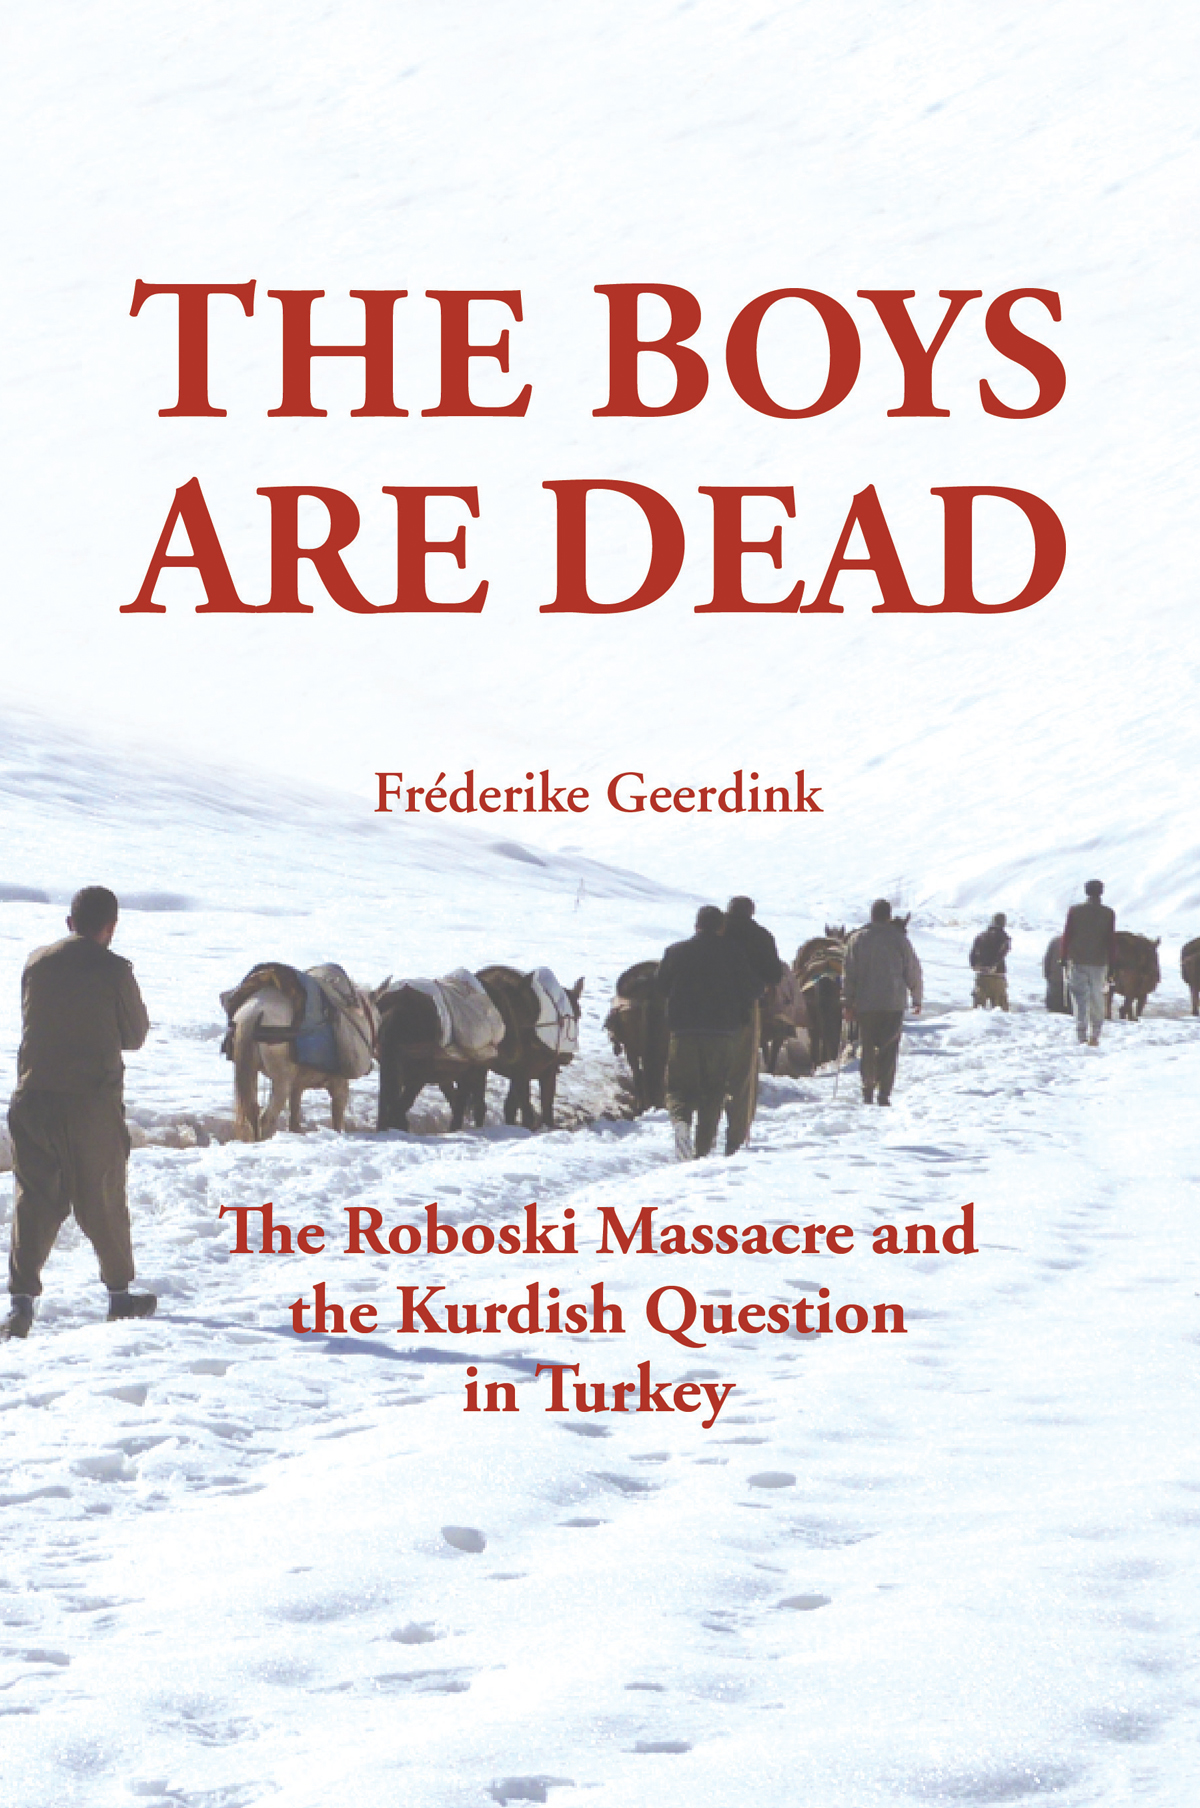 The Boys Are Dead: The Roboski Massacre and the Kurdish Question in Turkey